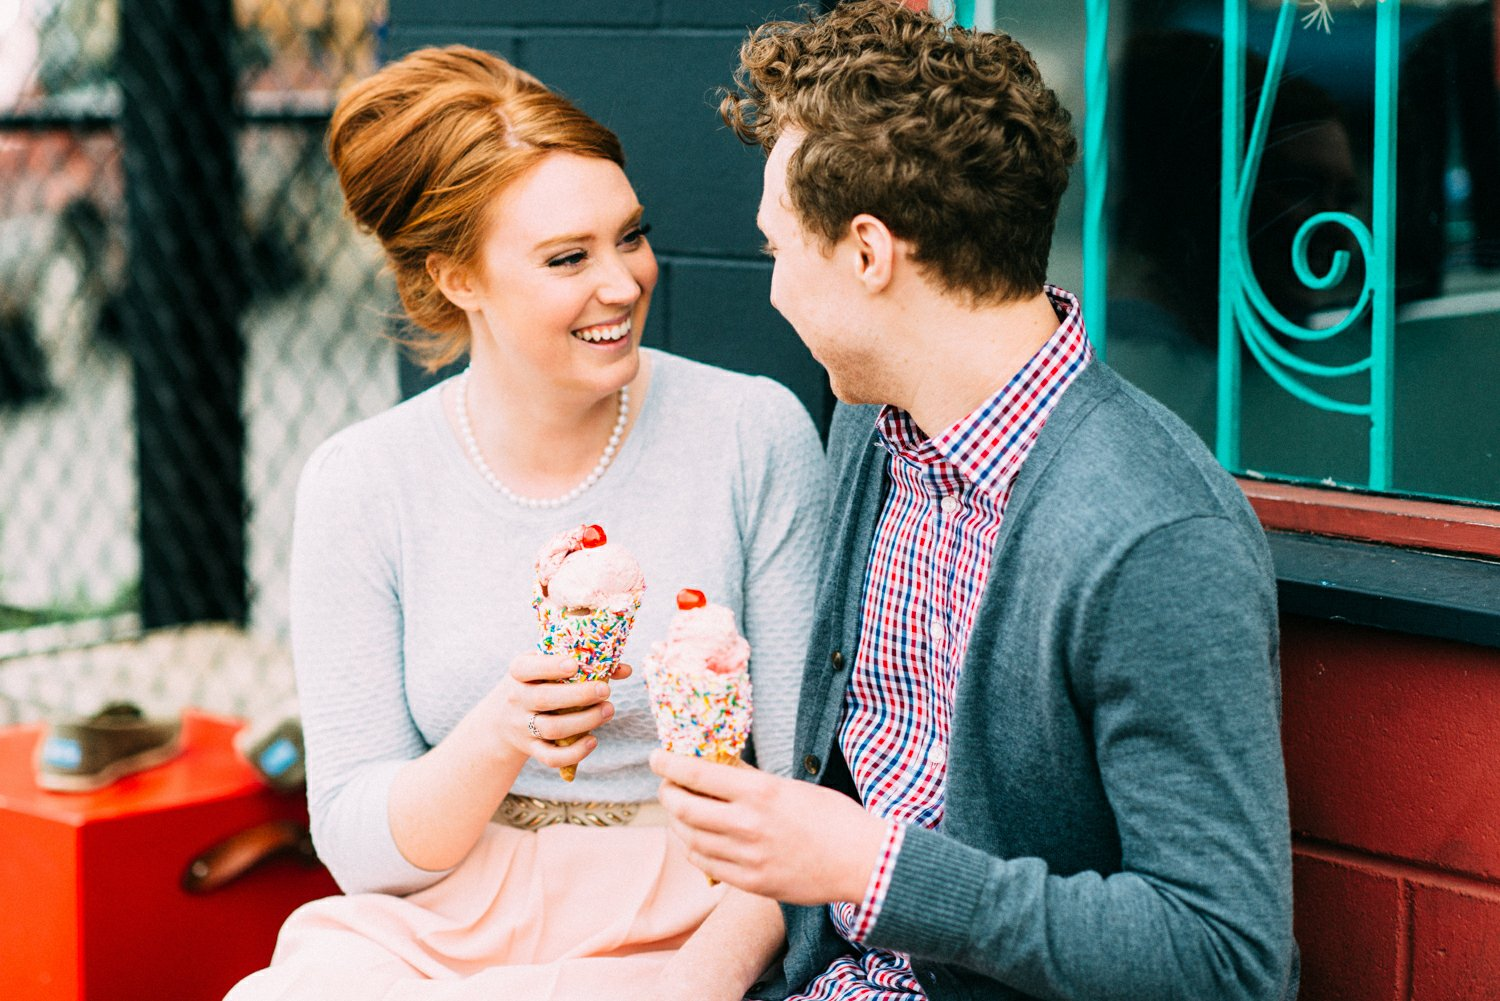 Couple laughs while eating ice cream during their fifties styled engagement shoot